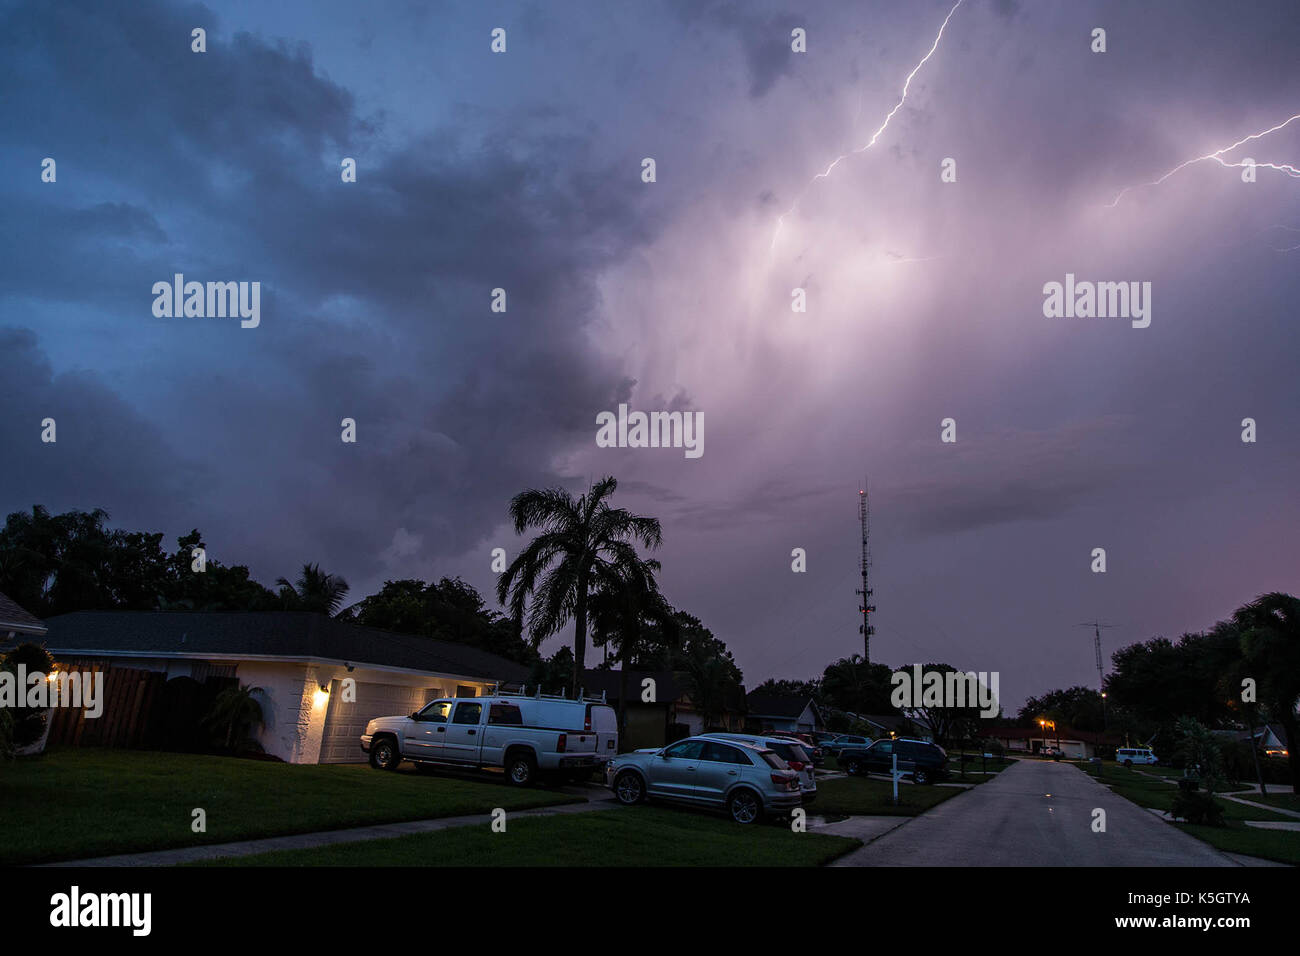 Tornado Warning Stock Photos & Tornado Warning Stock Images